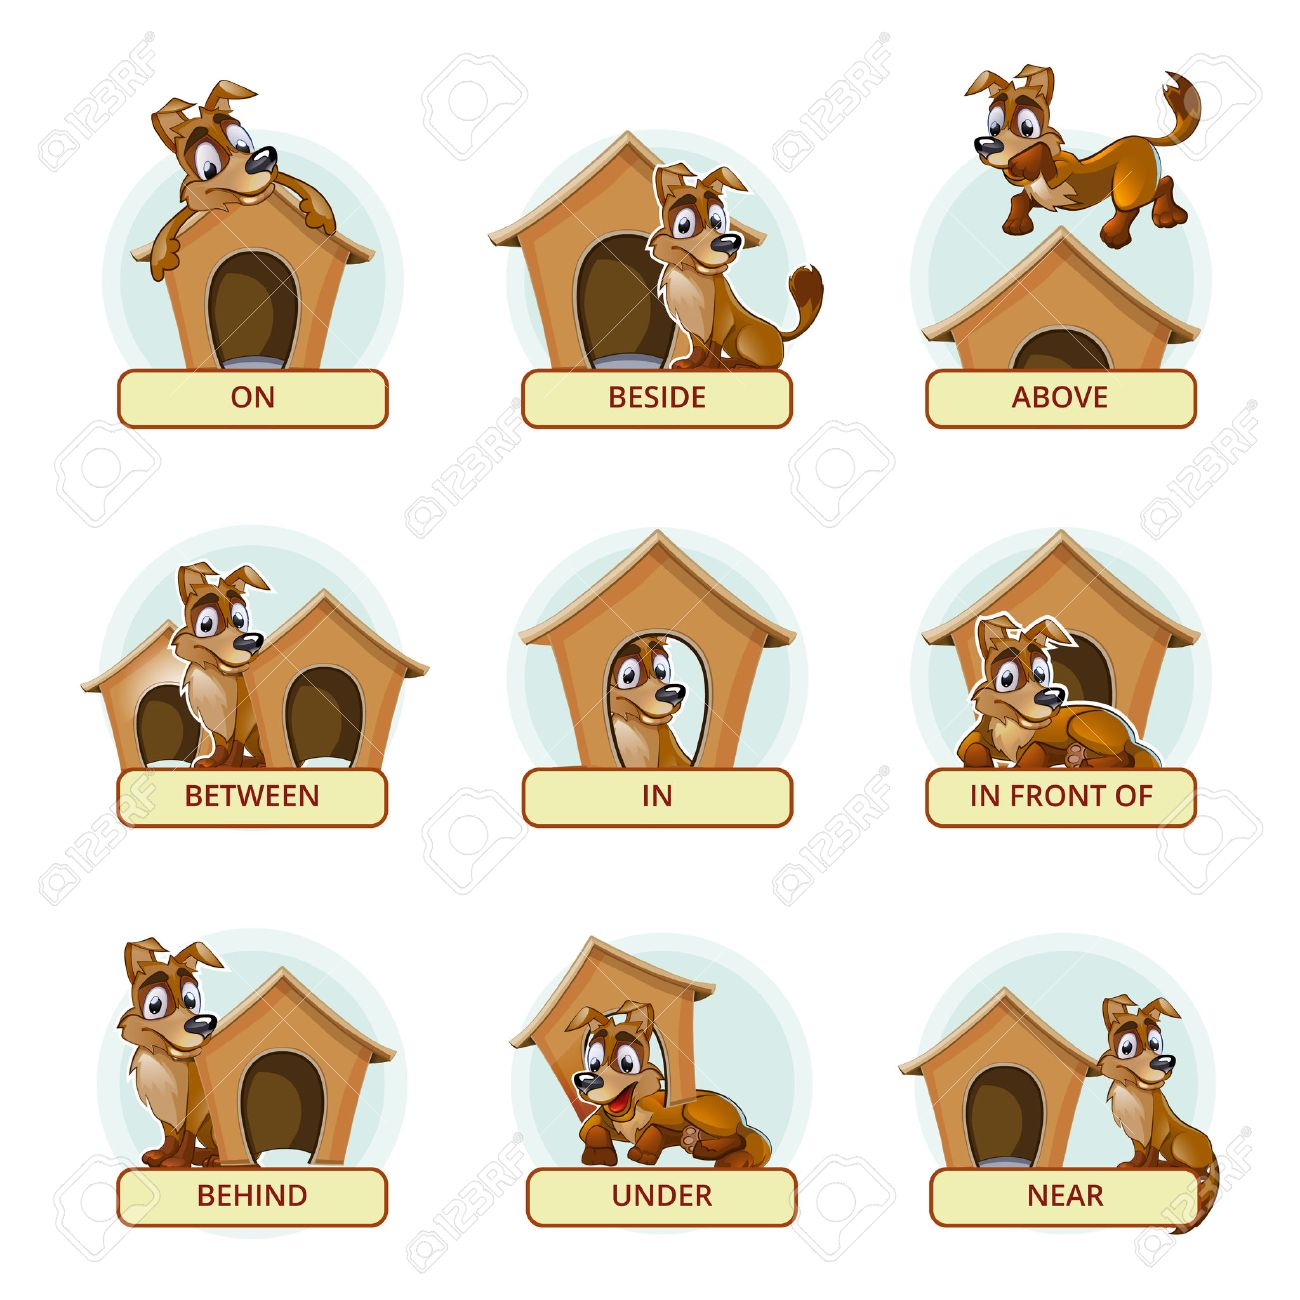 On preposition clipart » Clipart Station.